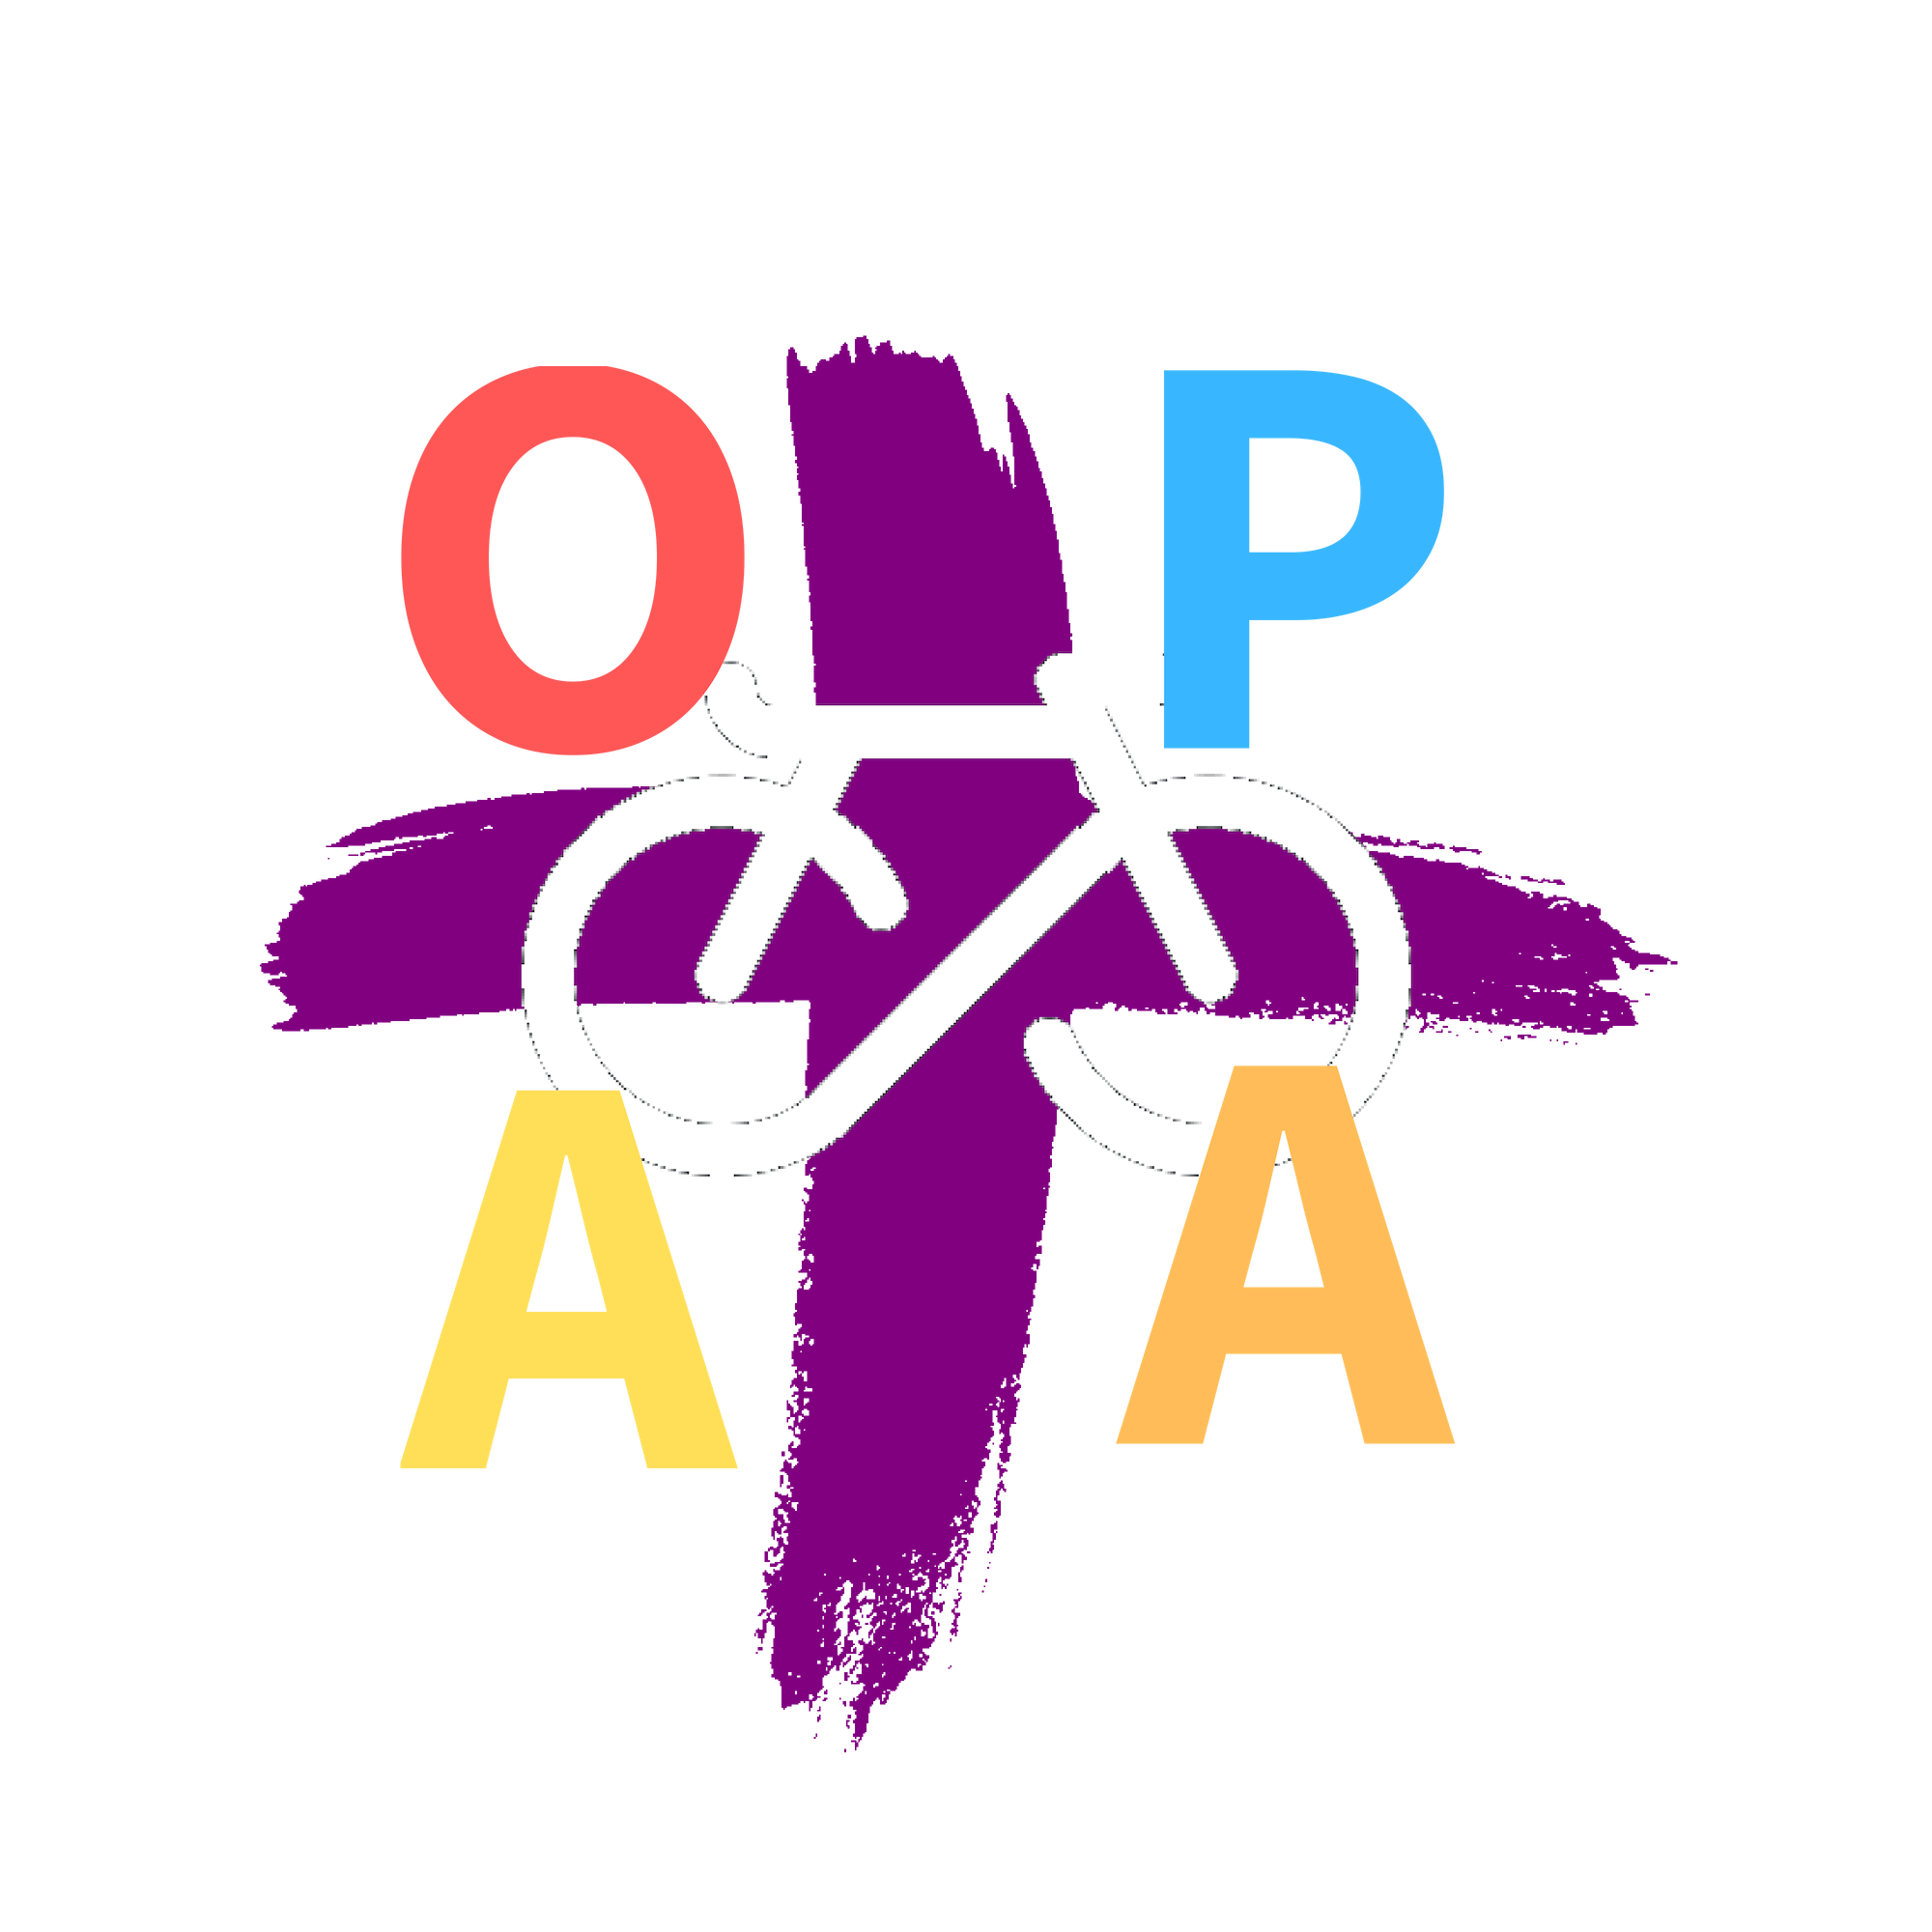 Copy of NEW OPAAT Logo.png